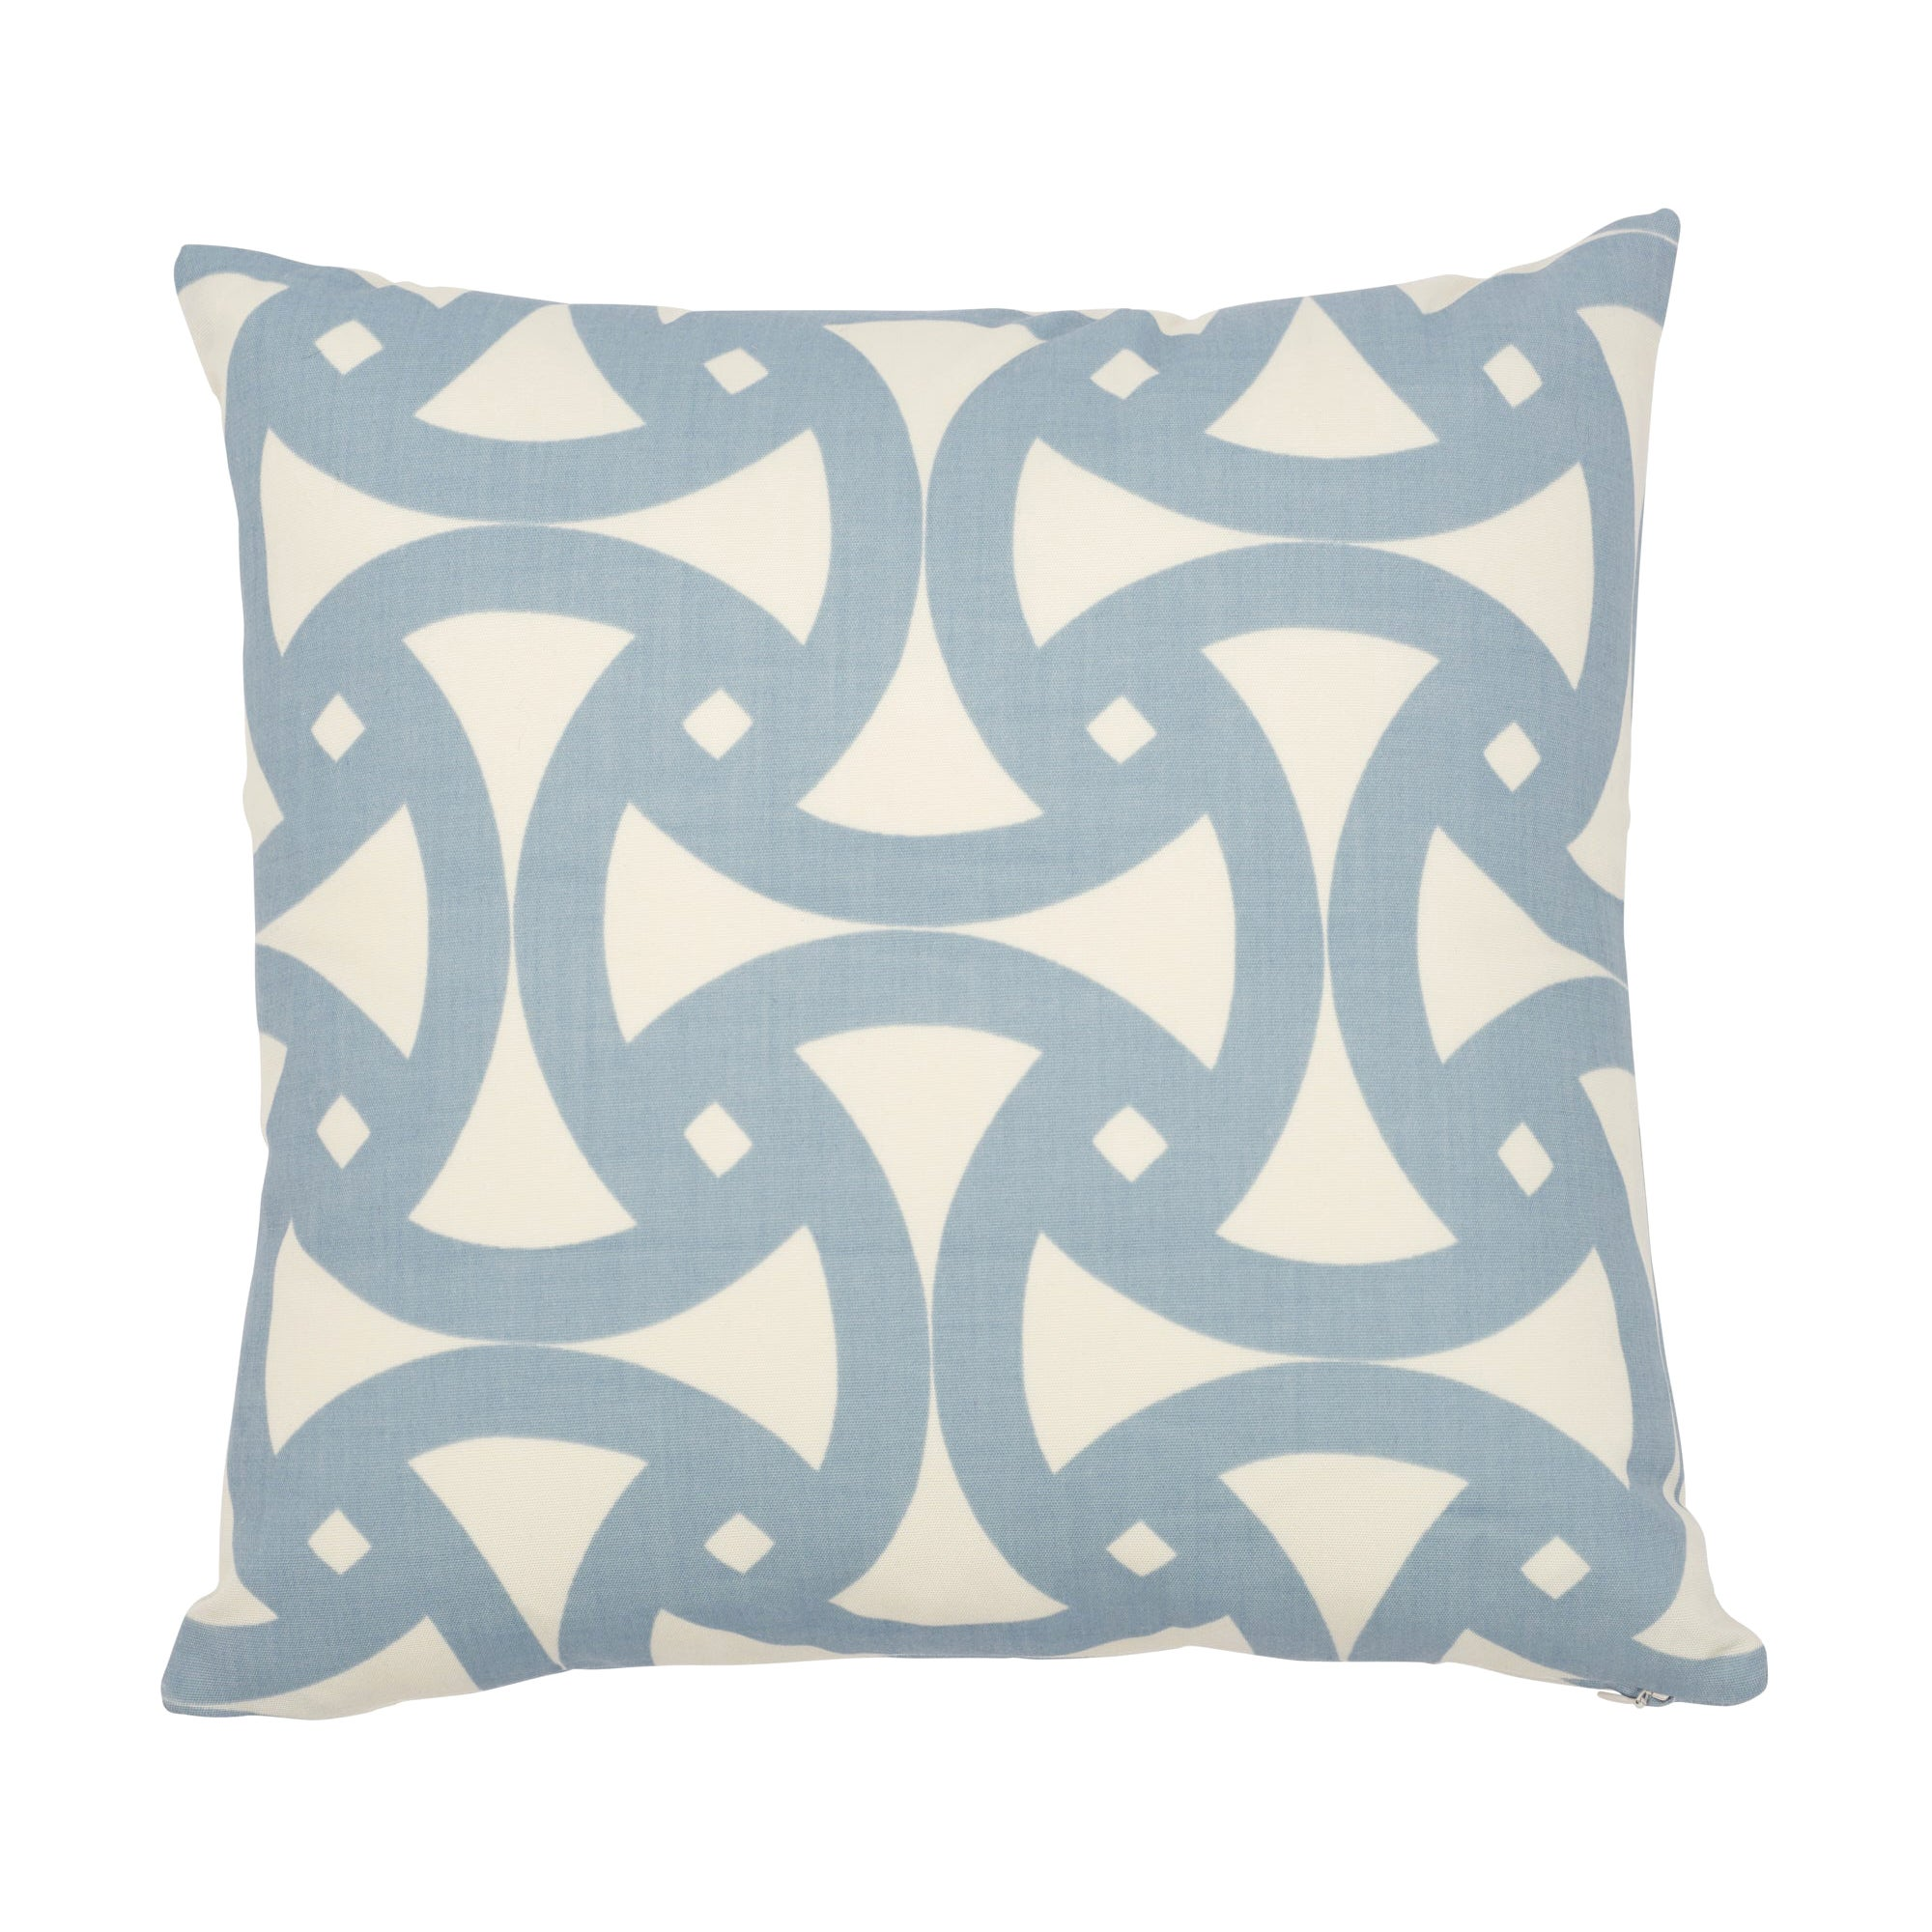 Schumacher Santorini Indoor/Outdoor Sky Two-Sided Pillow